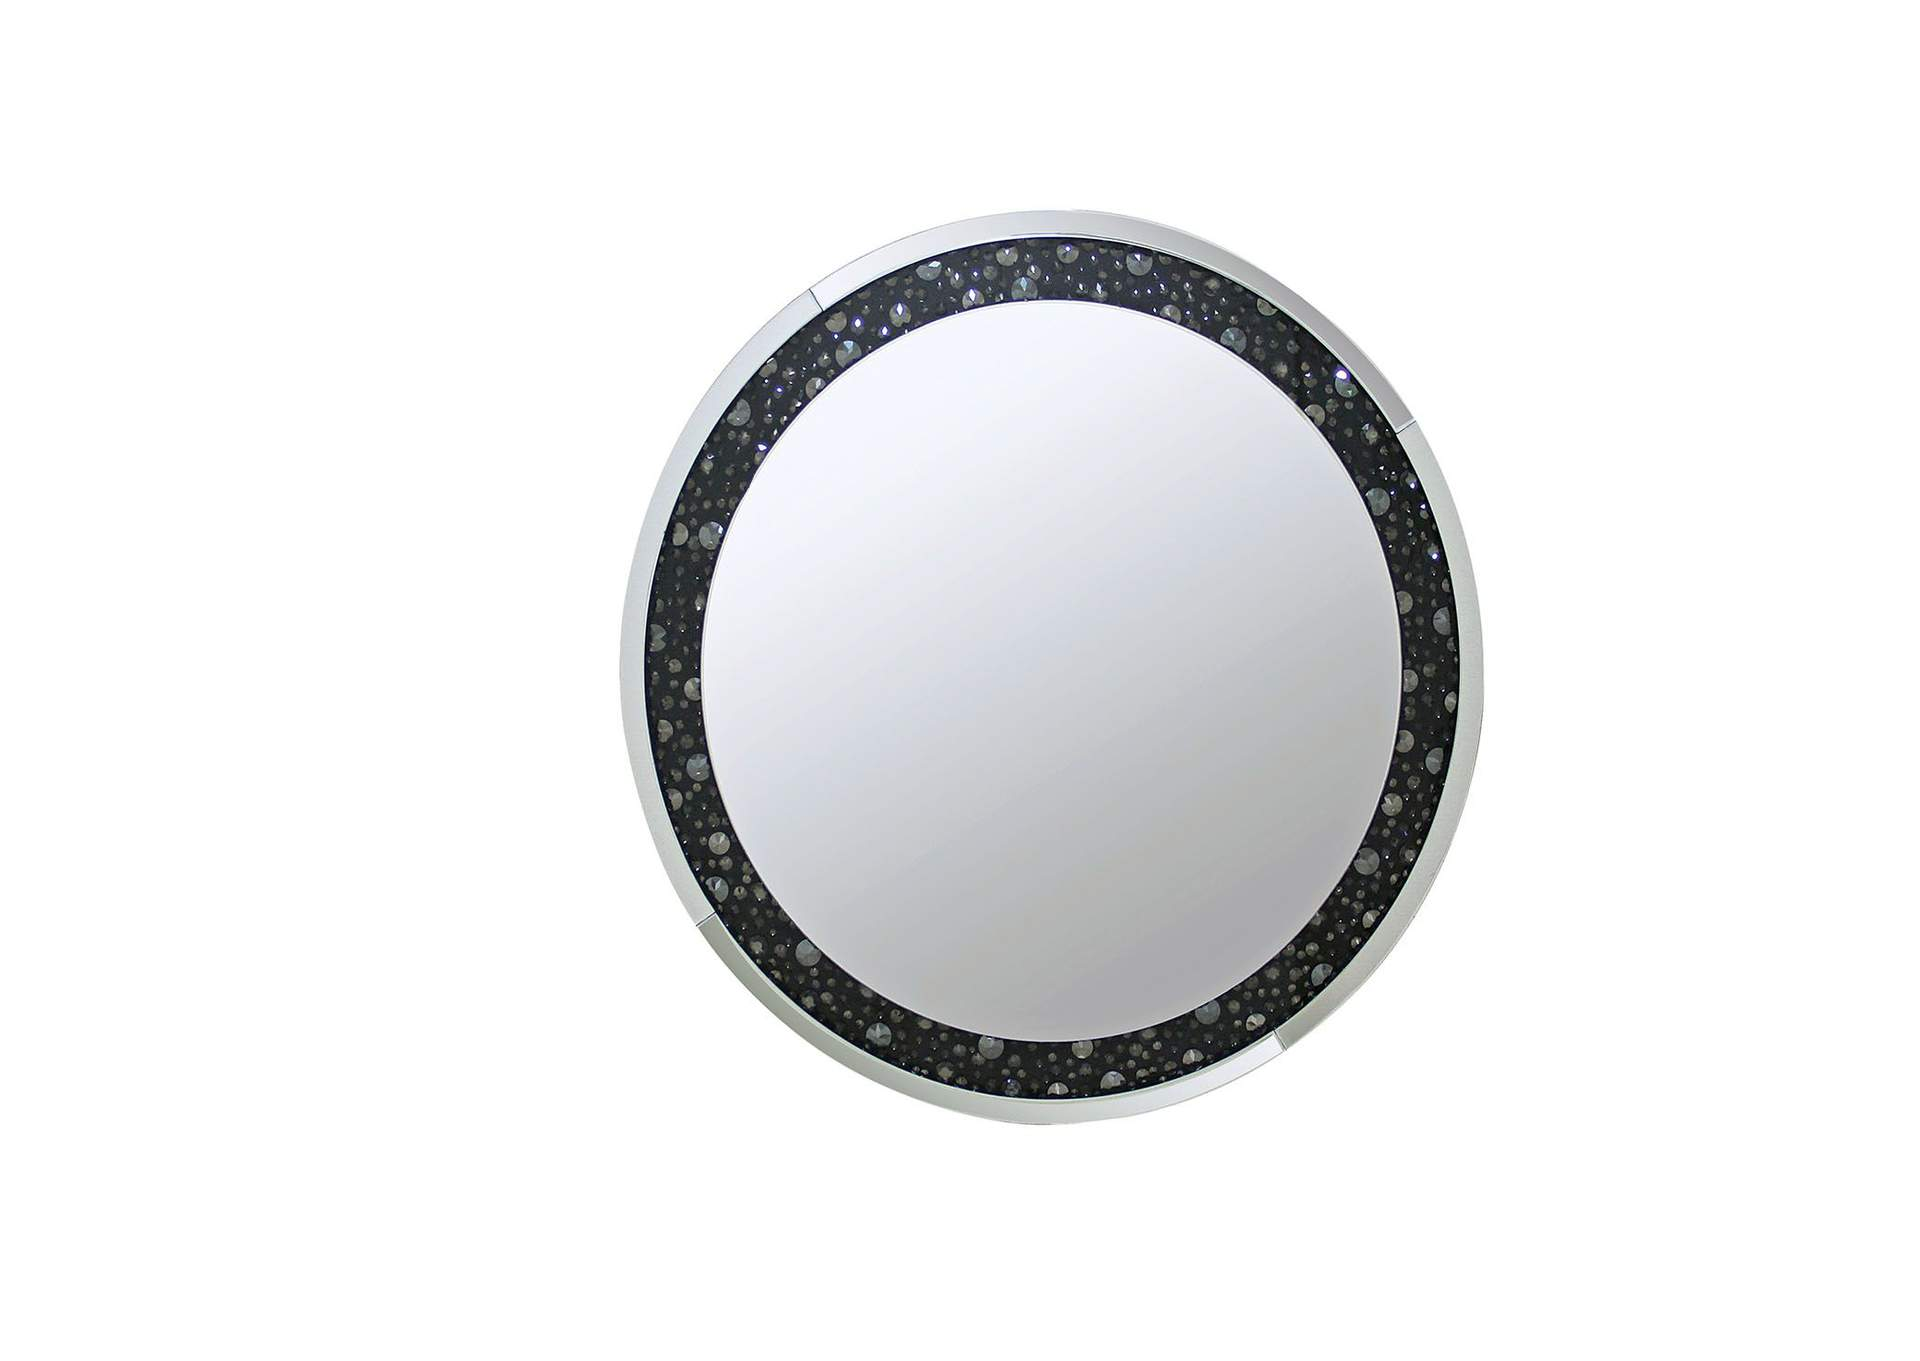 Noor Circle Accent Mirror,Acme